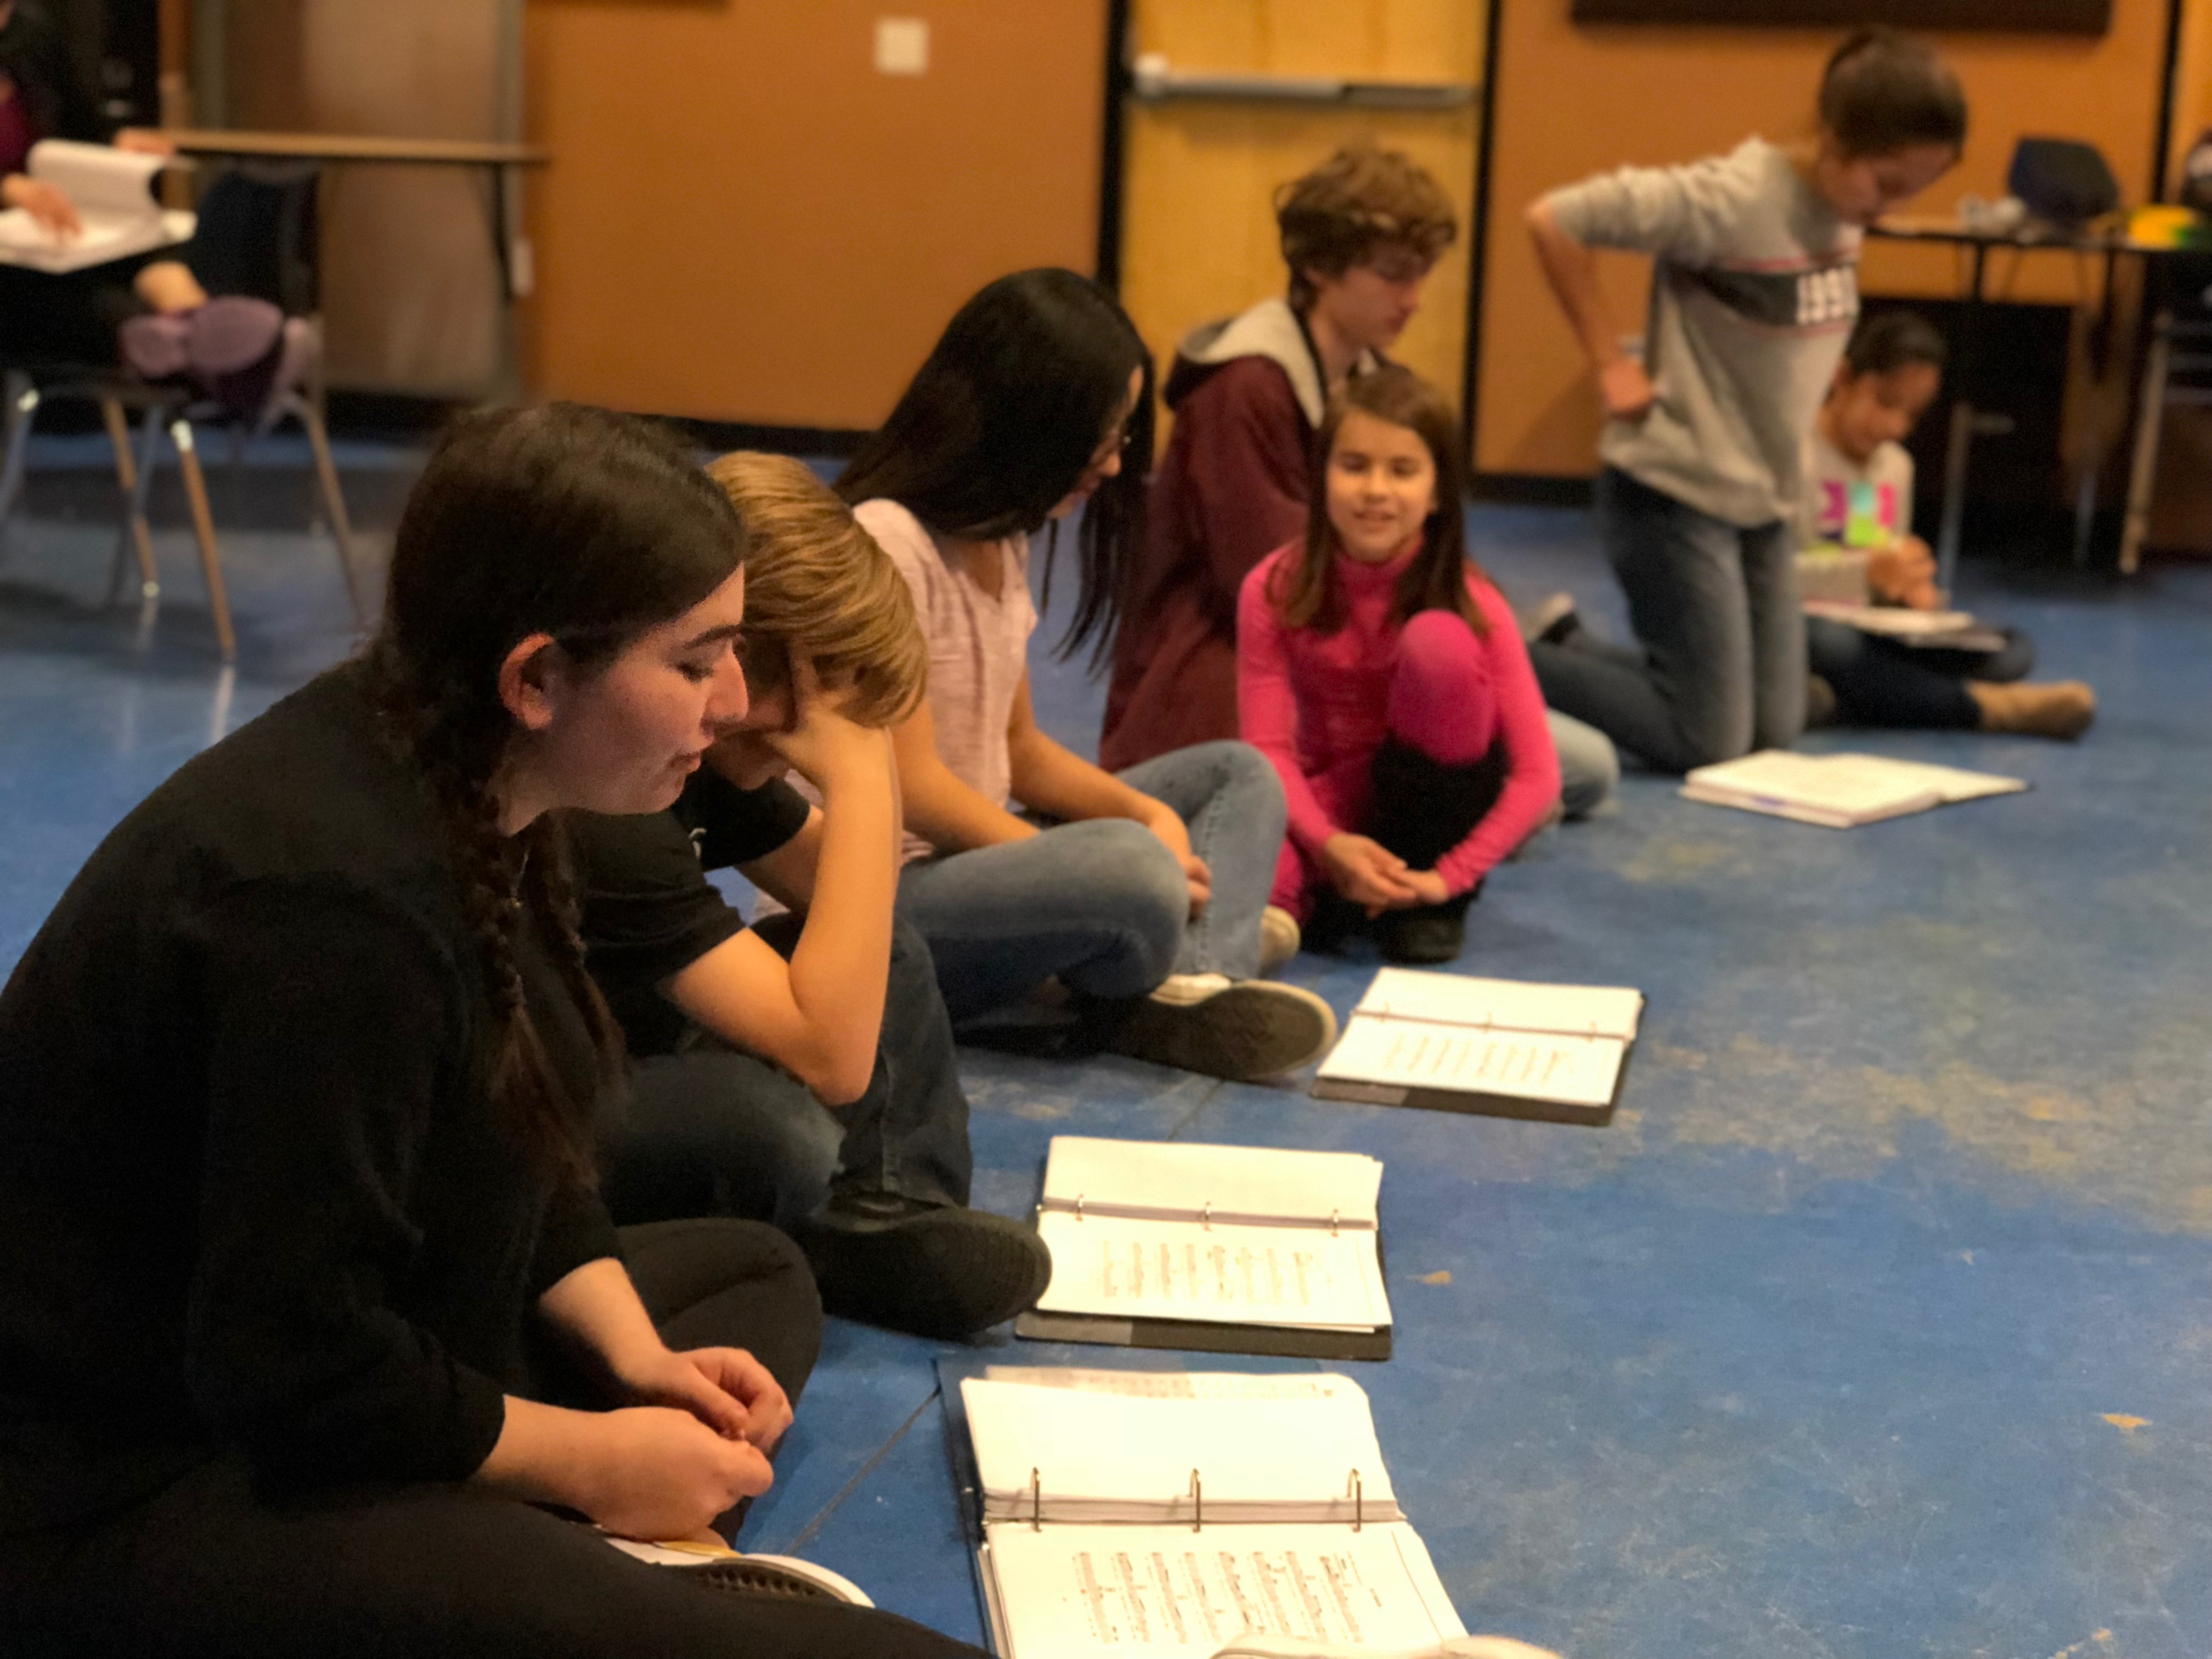 Rehearsals Begin for Sound of Music' at 5th Avenue Theatre